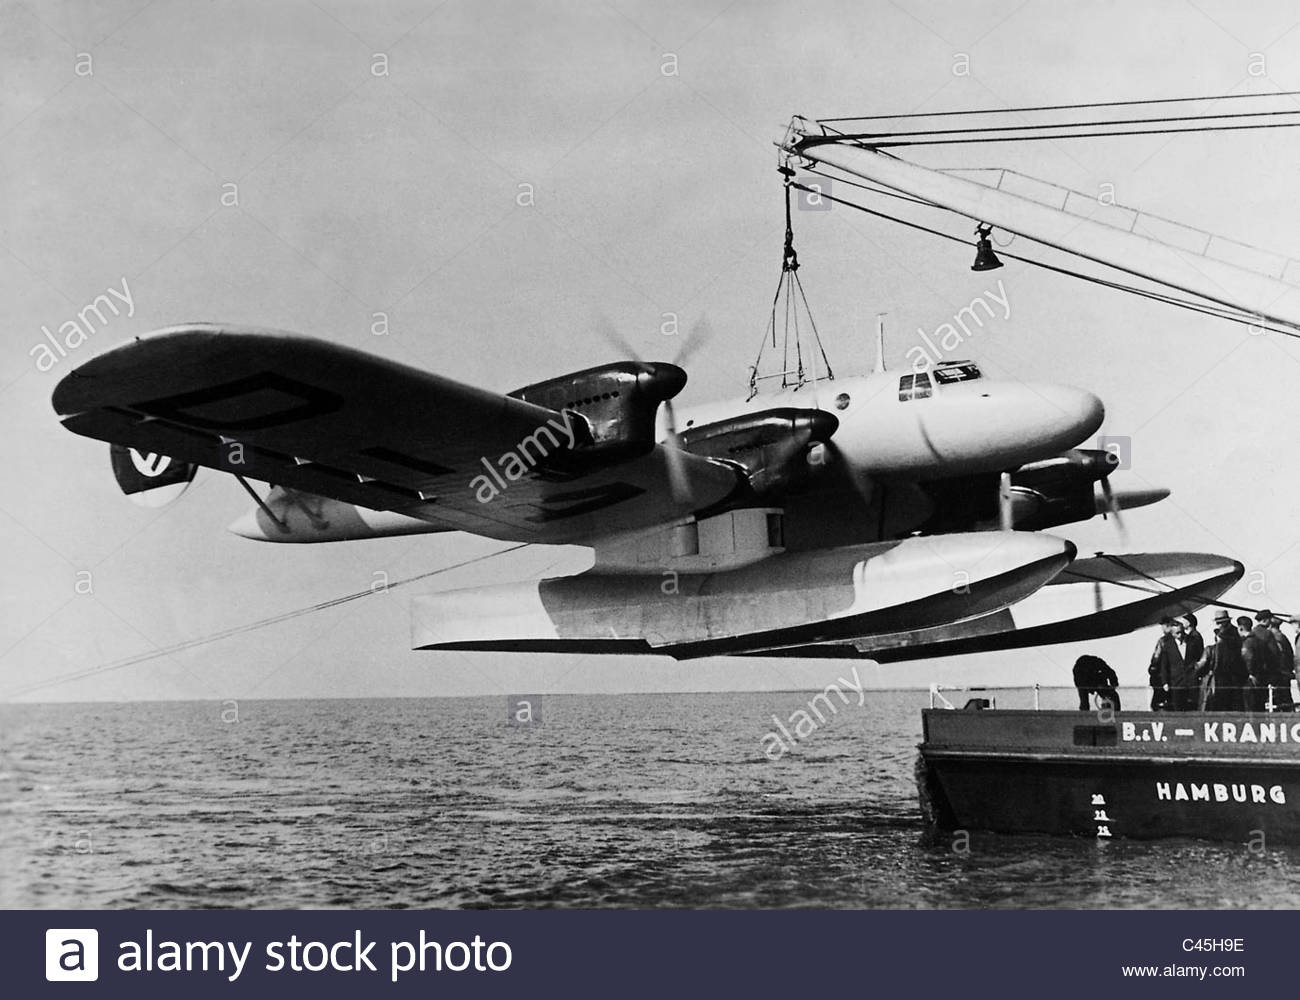 flying-boat-ha-139-north-sea-of-blohm-und-voss-aircraft-gmbh-on-the-C45H9E.jpg